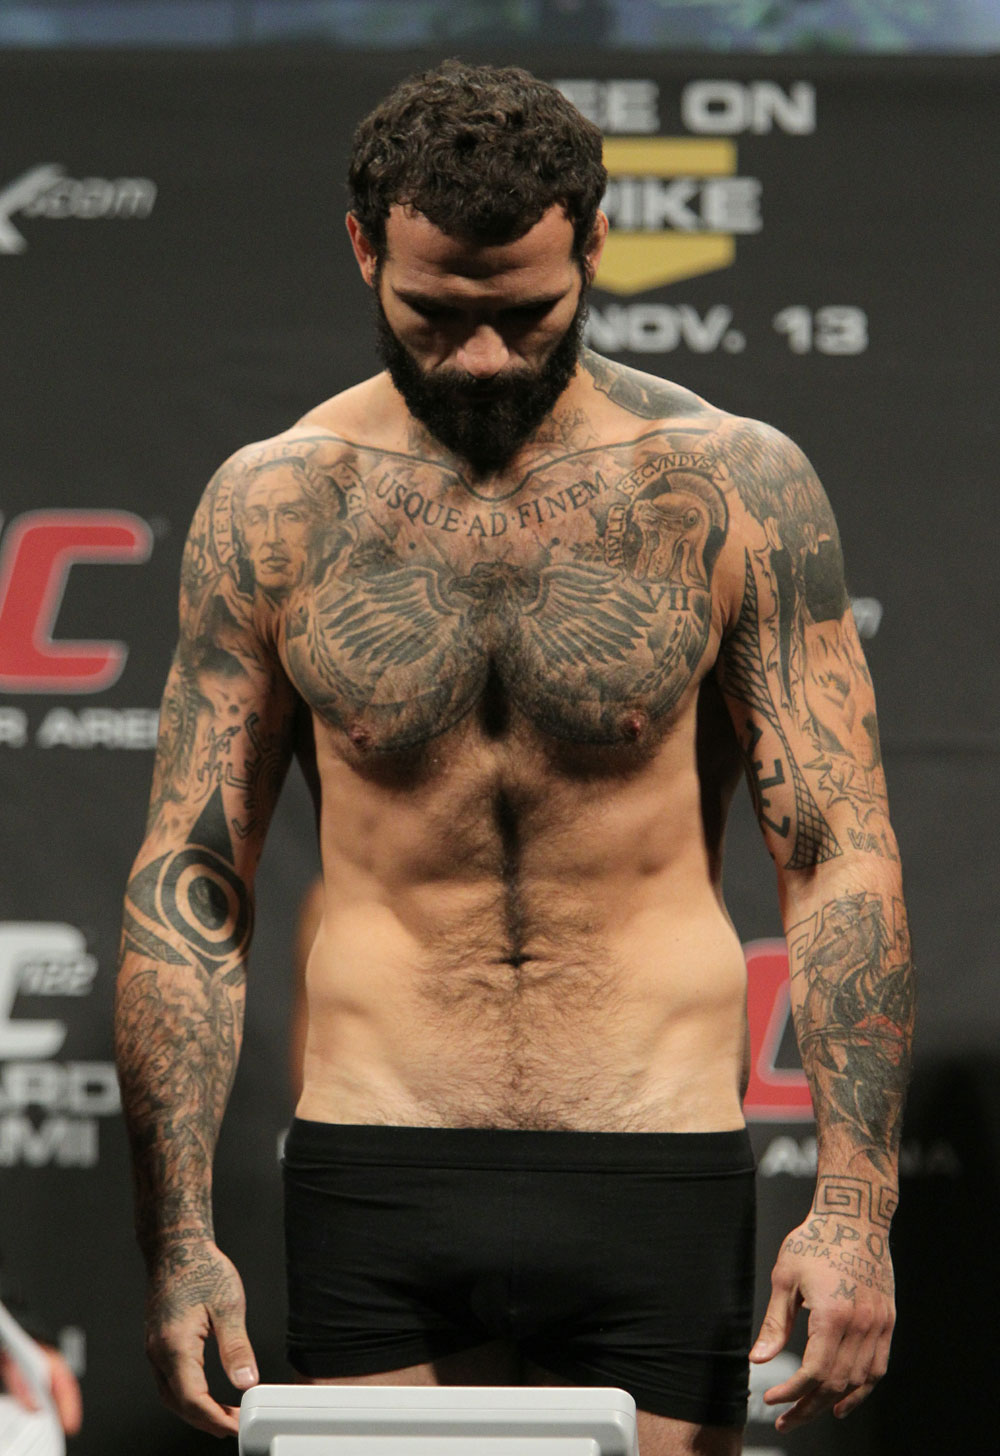 Alessio Sakara of Italy weighs in at 186 lbs at the UFC 122 weigh-in at the Koenig Pilsener Arena on November 12,  2010 in Oberhausen, Germany.  (Photo by Josh Hedges/Zuffa LLC/Zuffa LLC via Getty Images)